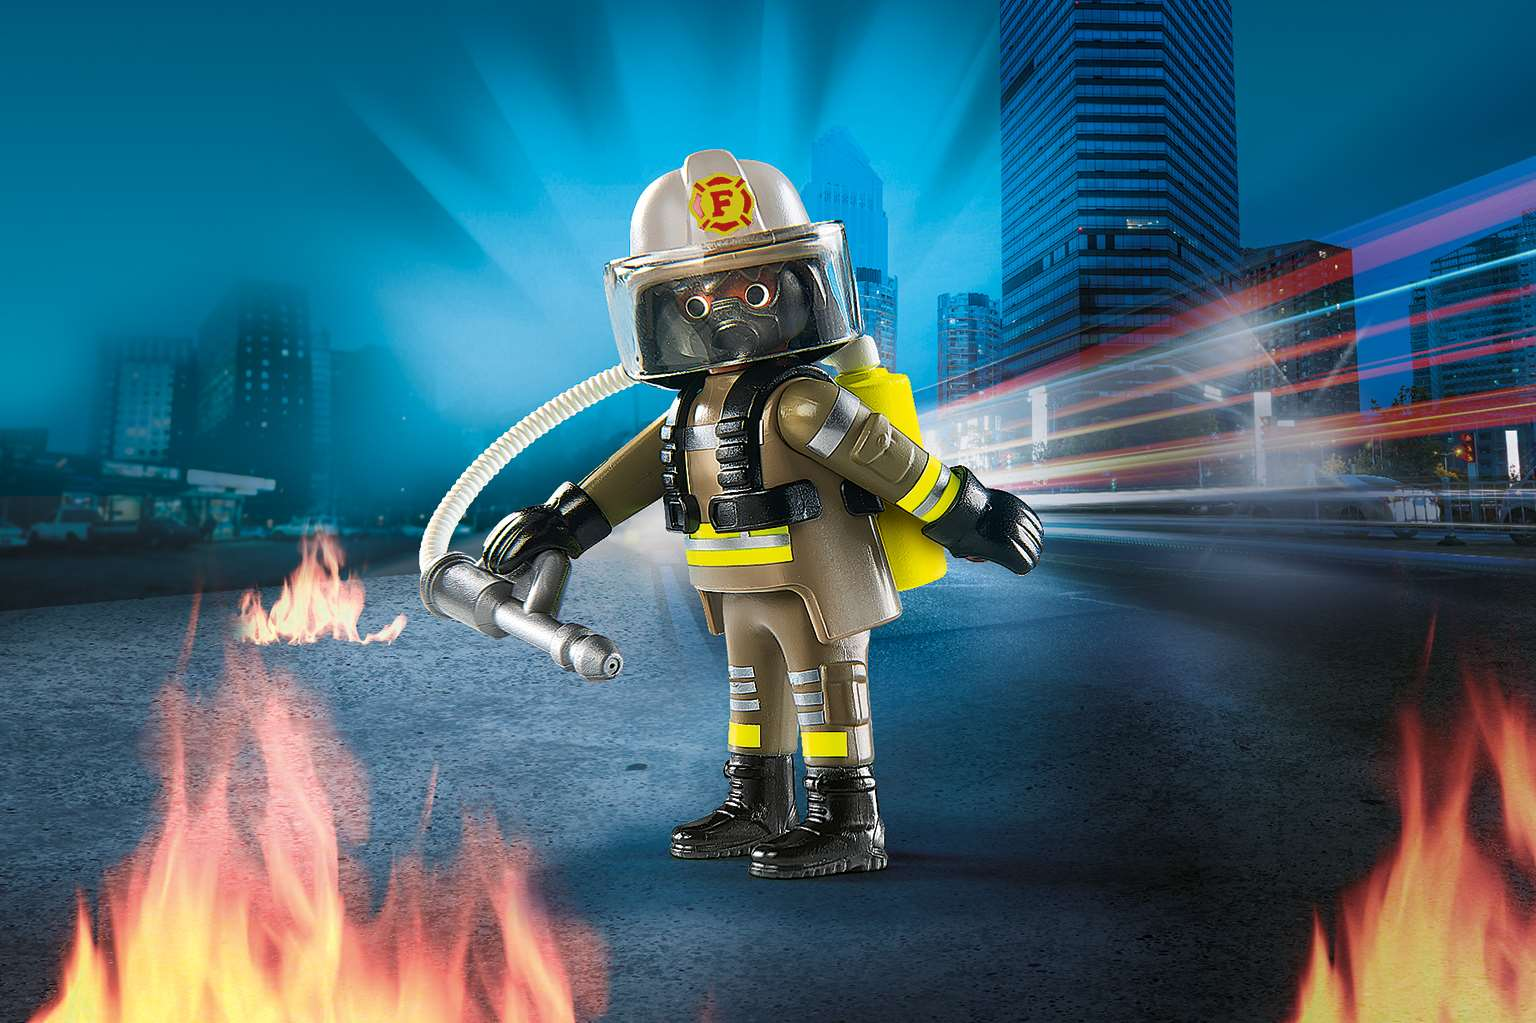 Firefighter for PLAYMO-Friends